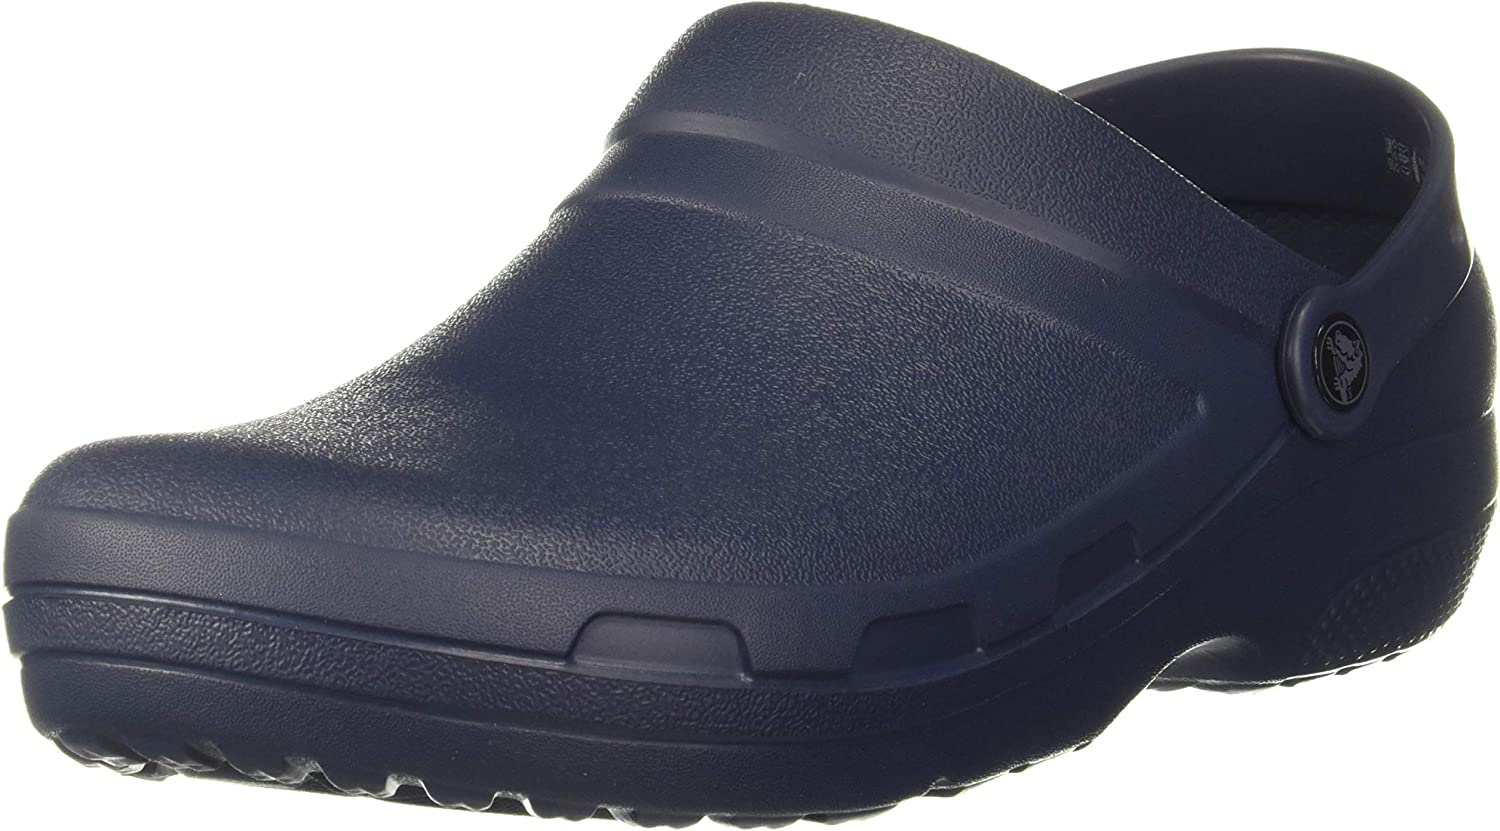 Crocs Specialist Ii Clog | Comfortable Work, Nursing Or Chef Shoe